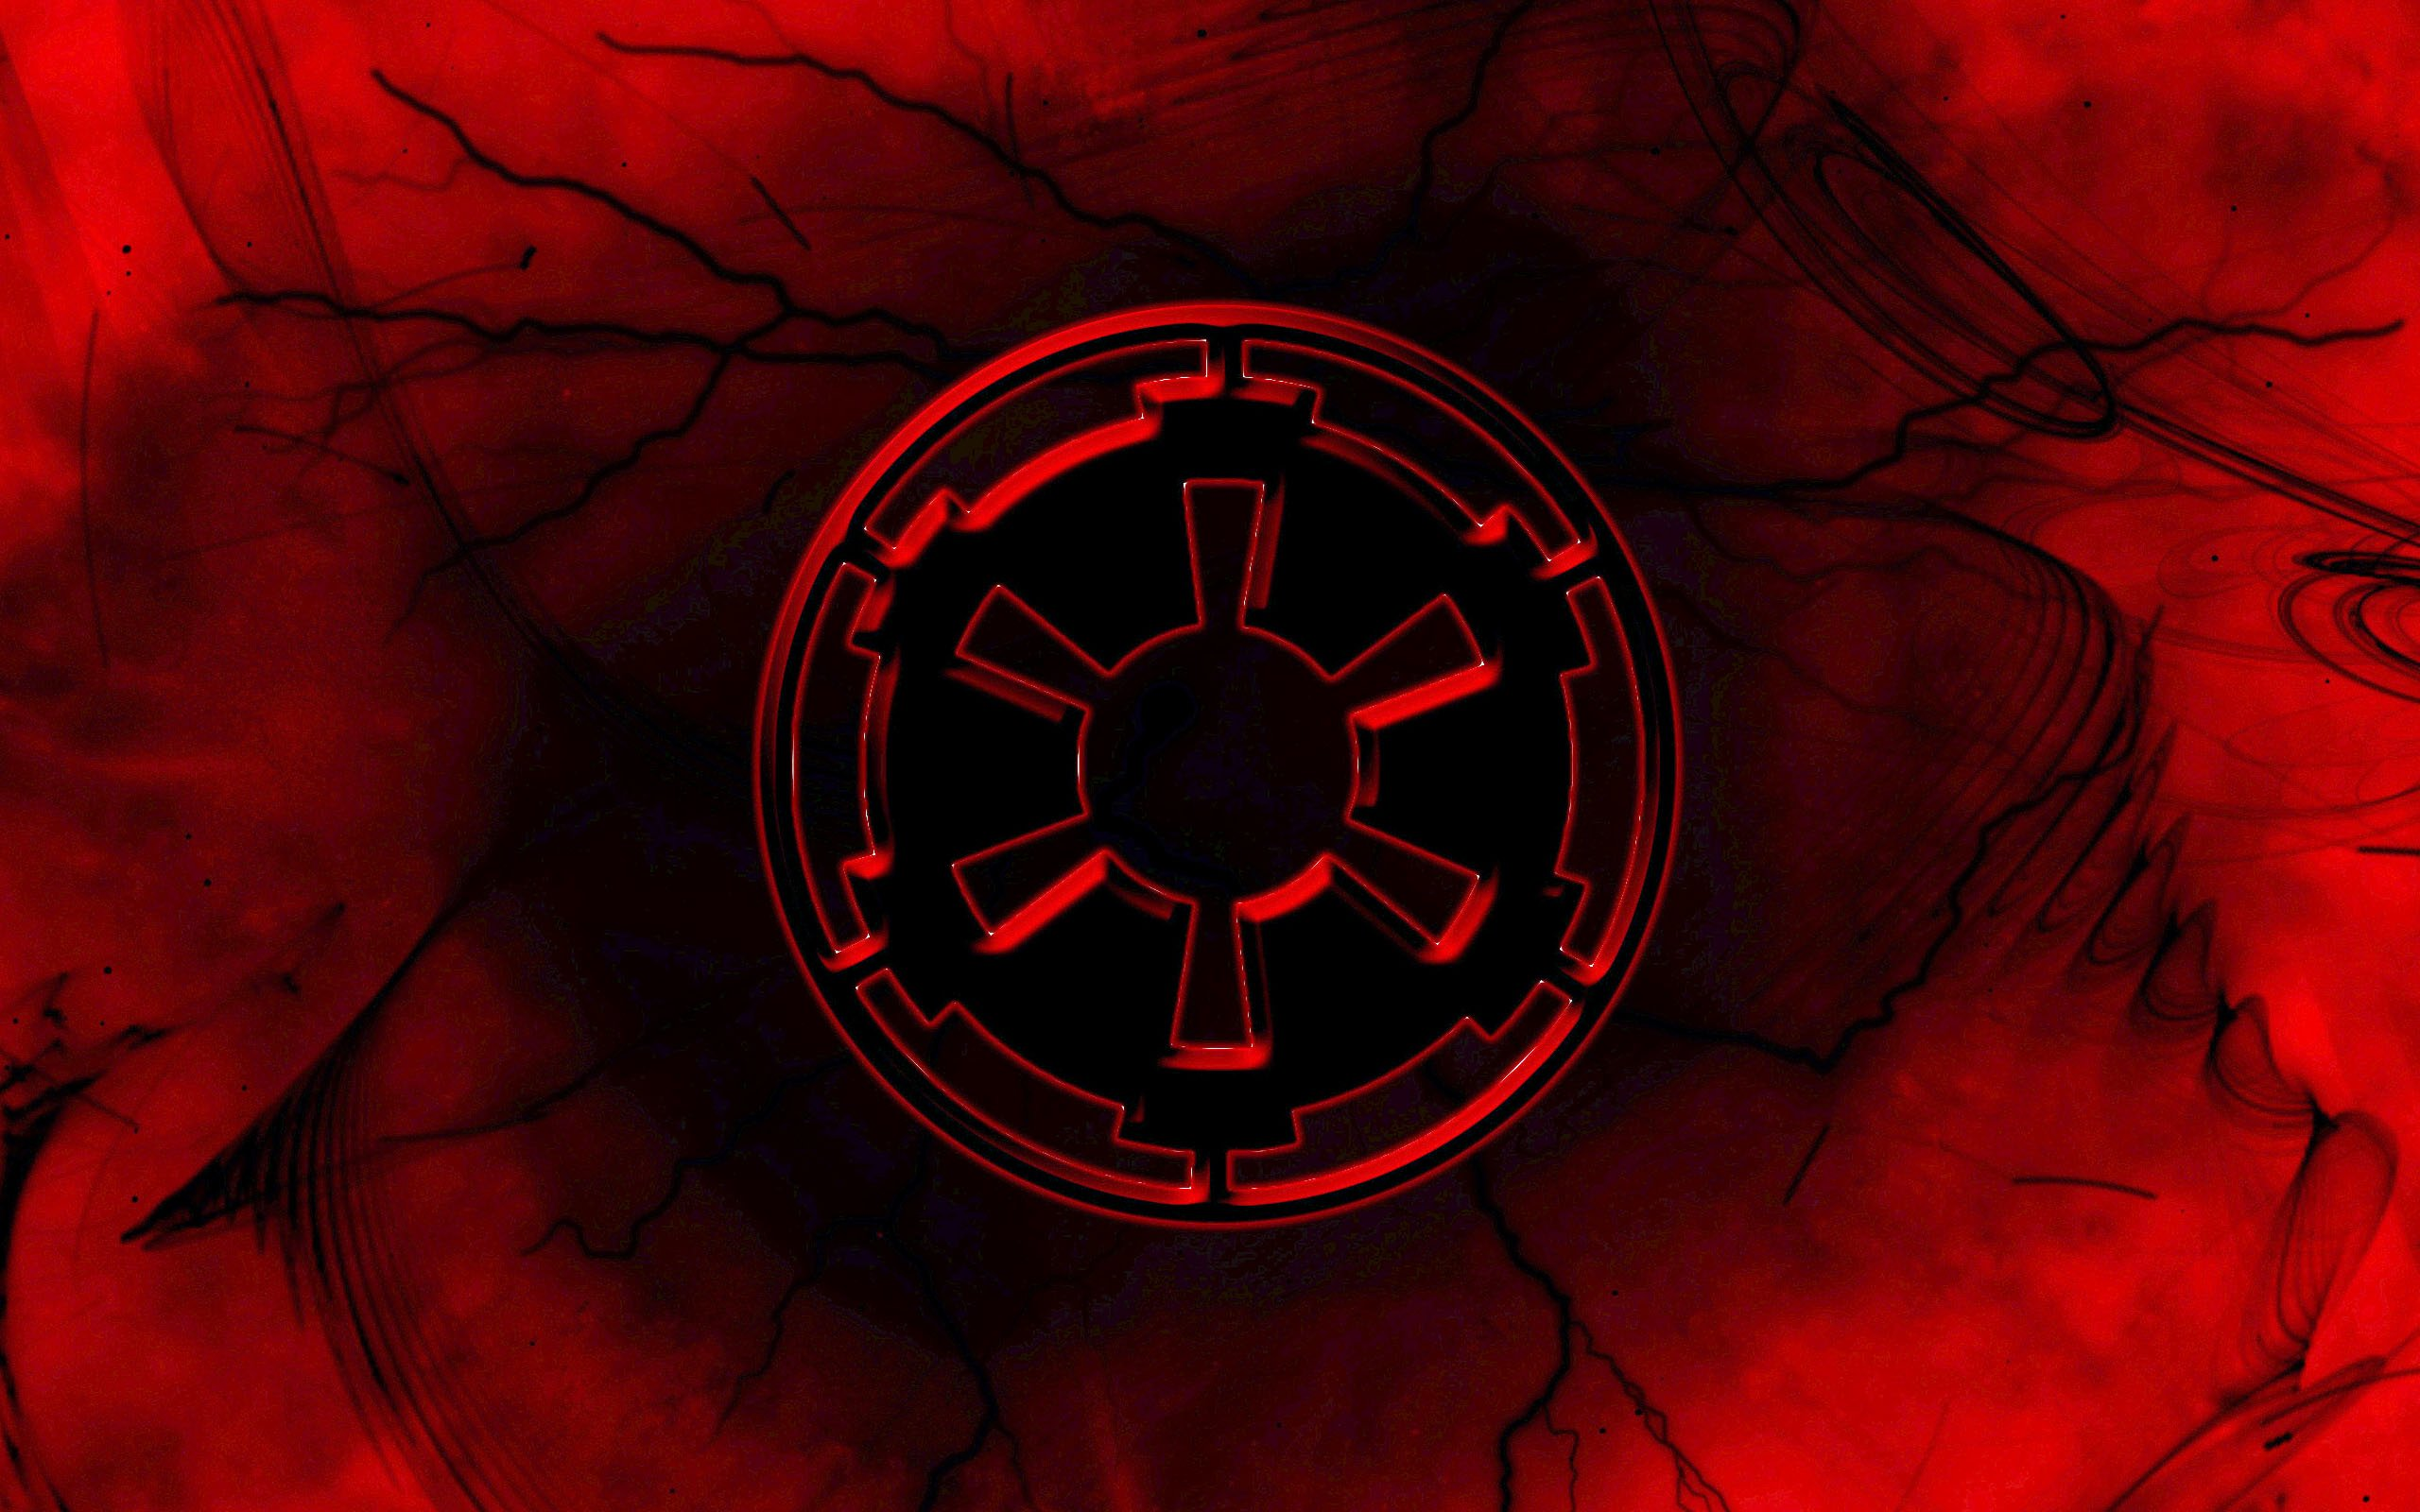 Star Wars Sith Wallpapers 2560x1600